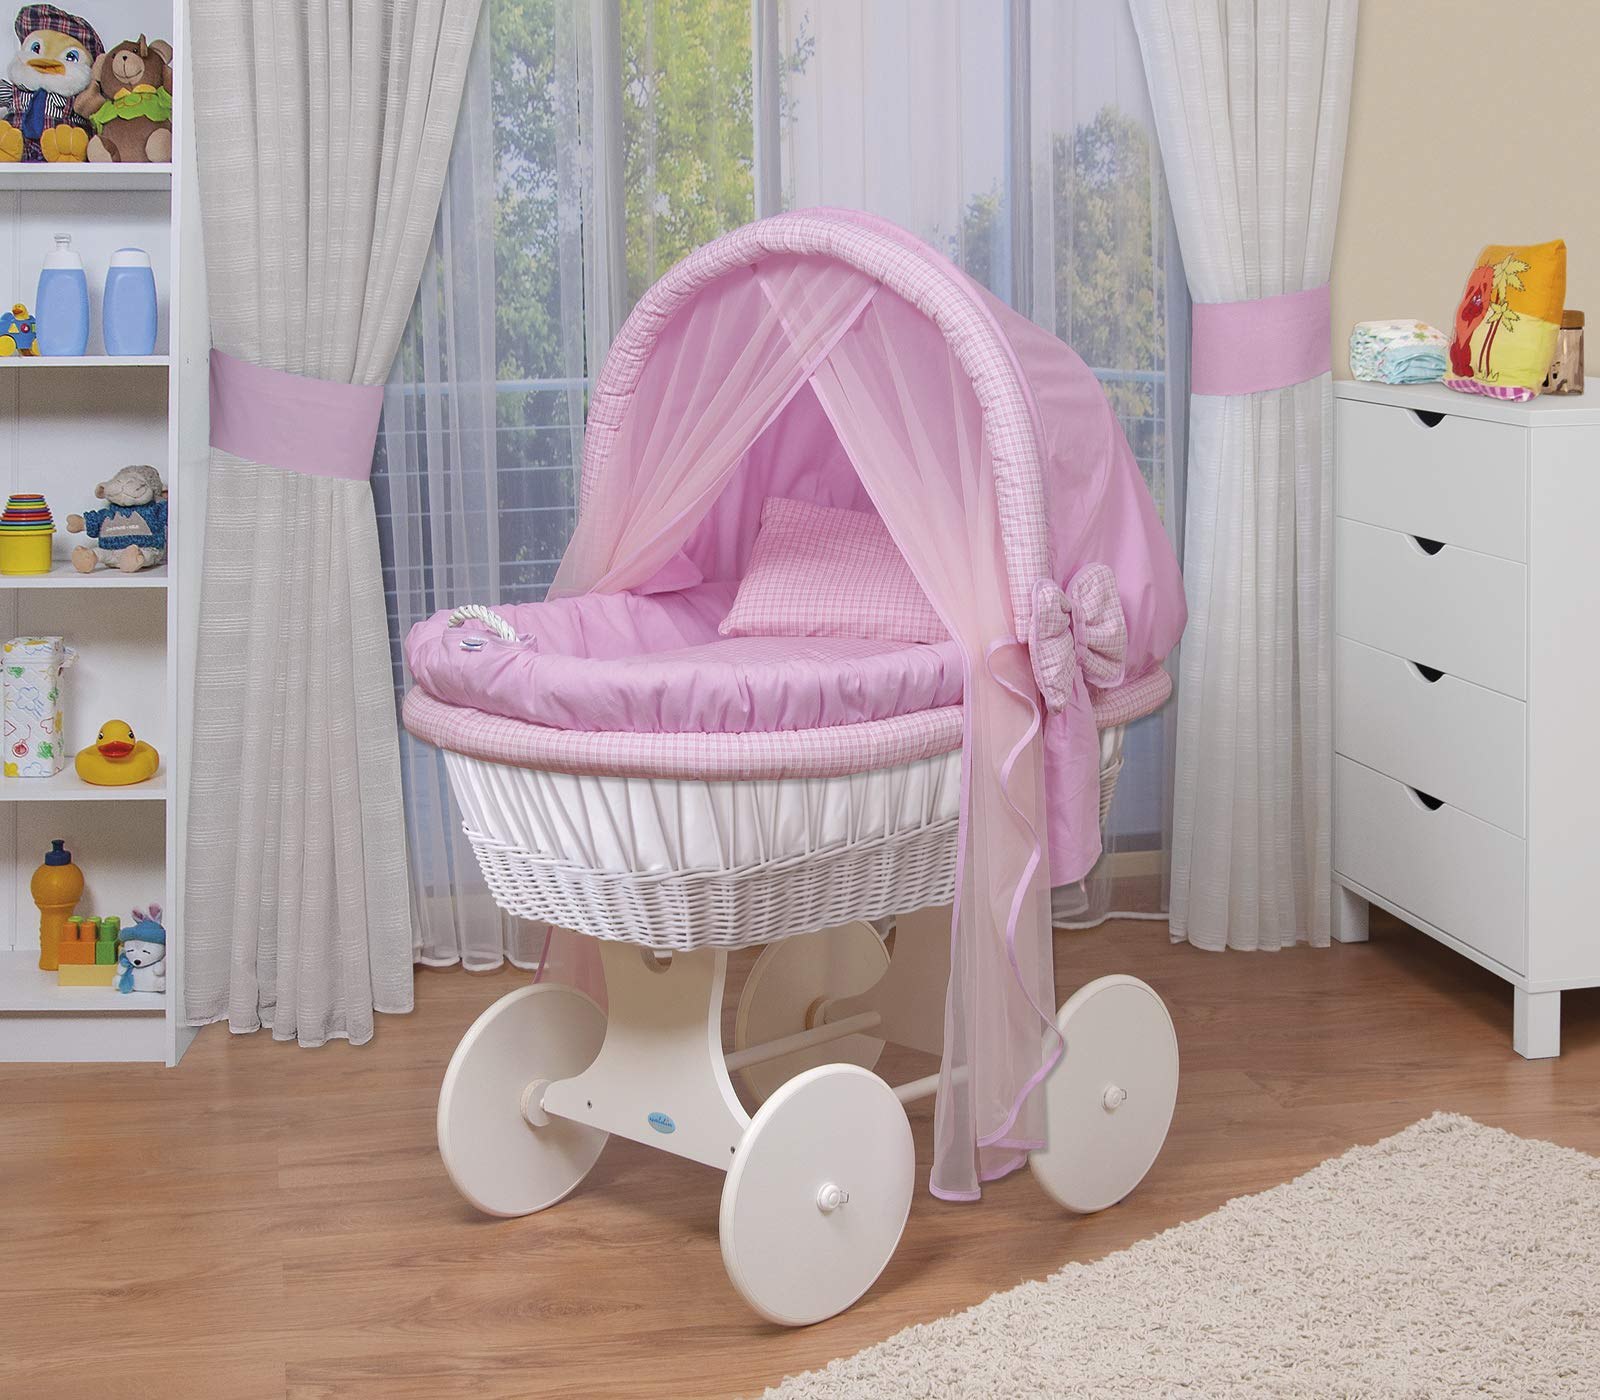 WALDIN Baby wicker cradle,Moses basket,44 models available,white painted stand/wheels,textile colour pink/squared WALDIN For more models and colours on Amazon click on WALDIN under the title Bassinet complete with bedding and stand Certified to safety standard EN 1130-1/2 1